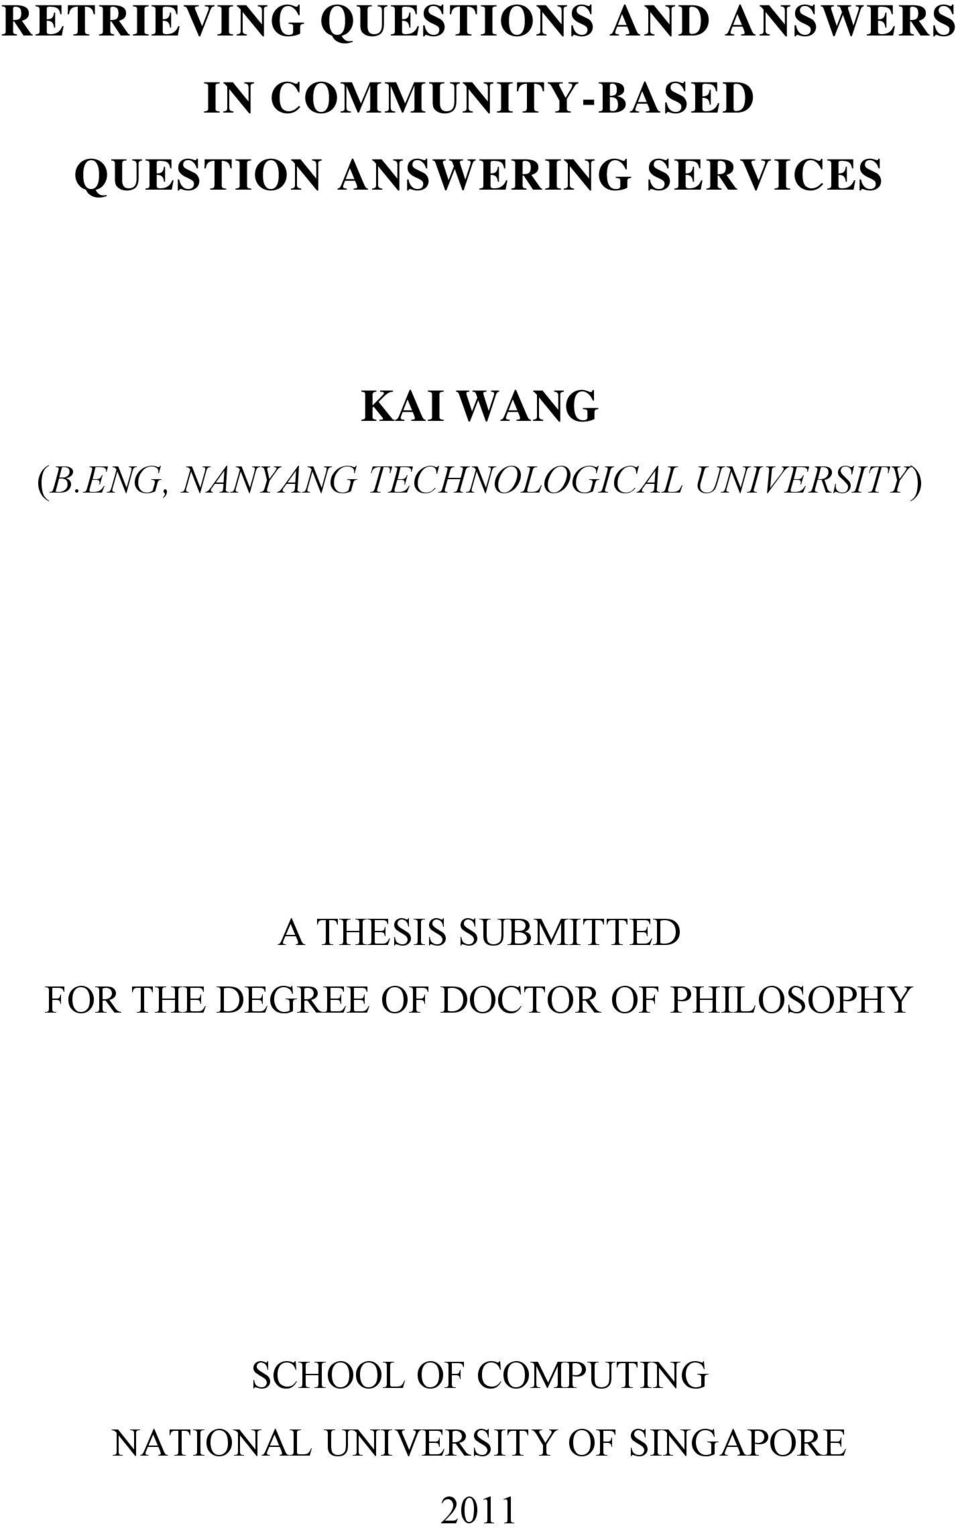 ENG, NANYANG TECHNOLOGICAL UNIVERSITY) A THESIS SUBMITTED FOR